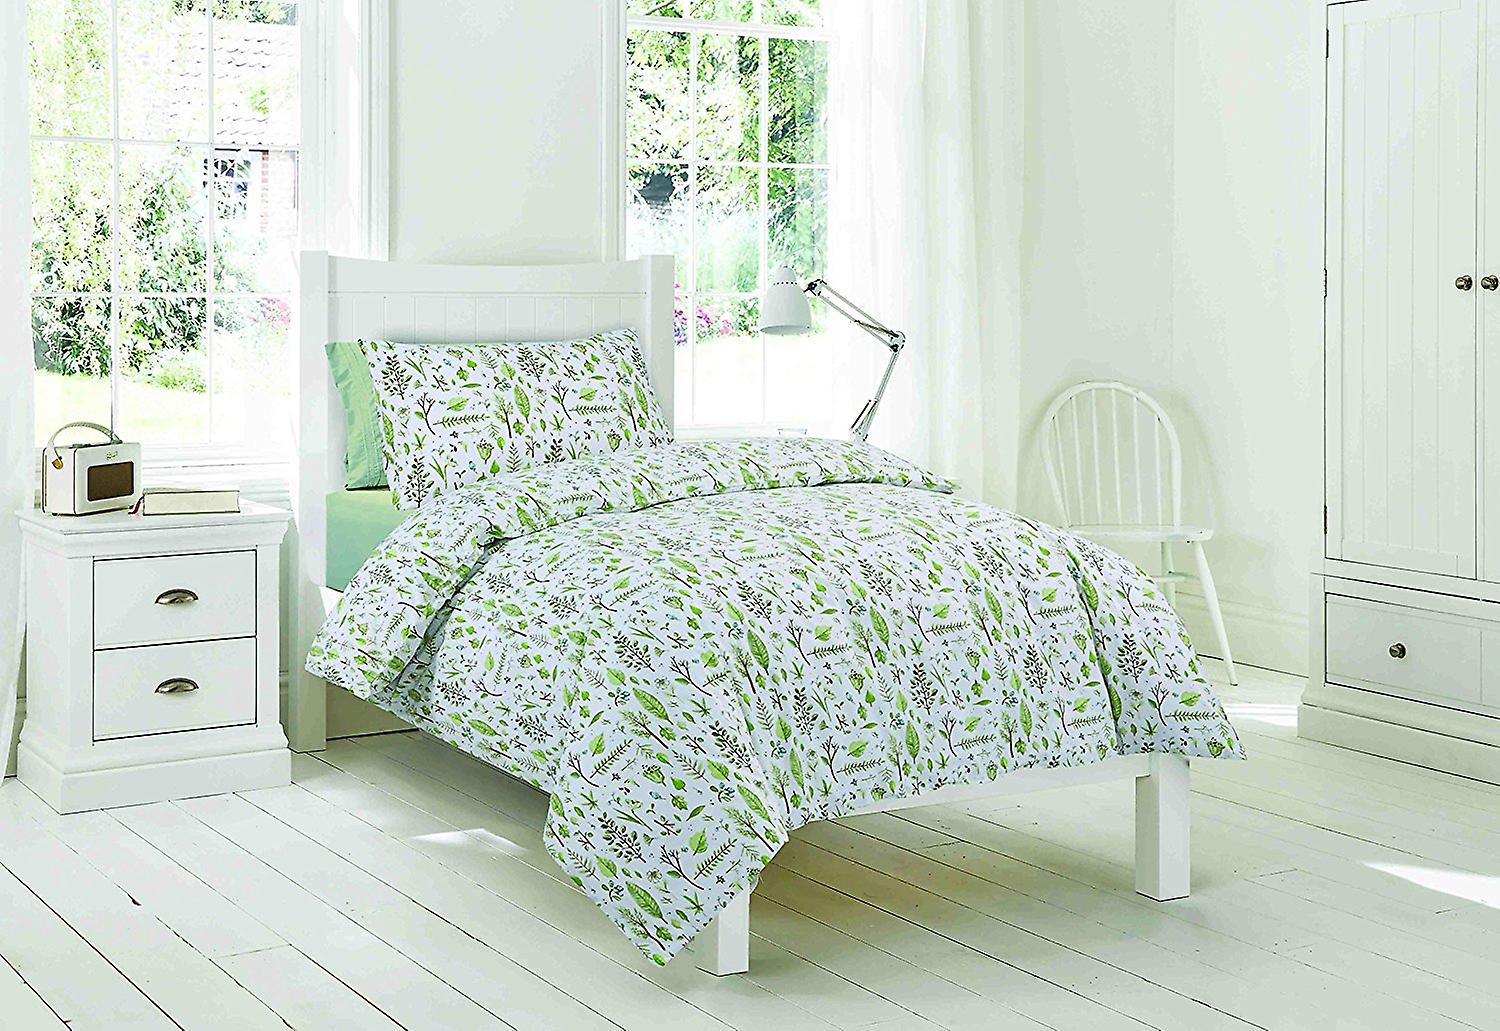 Easy-Fit couette lilas fleuri